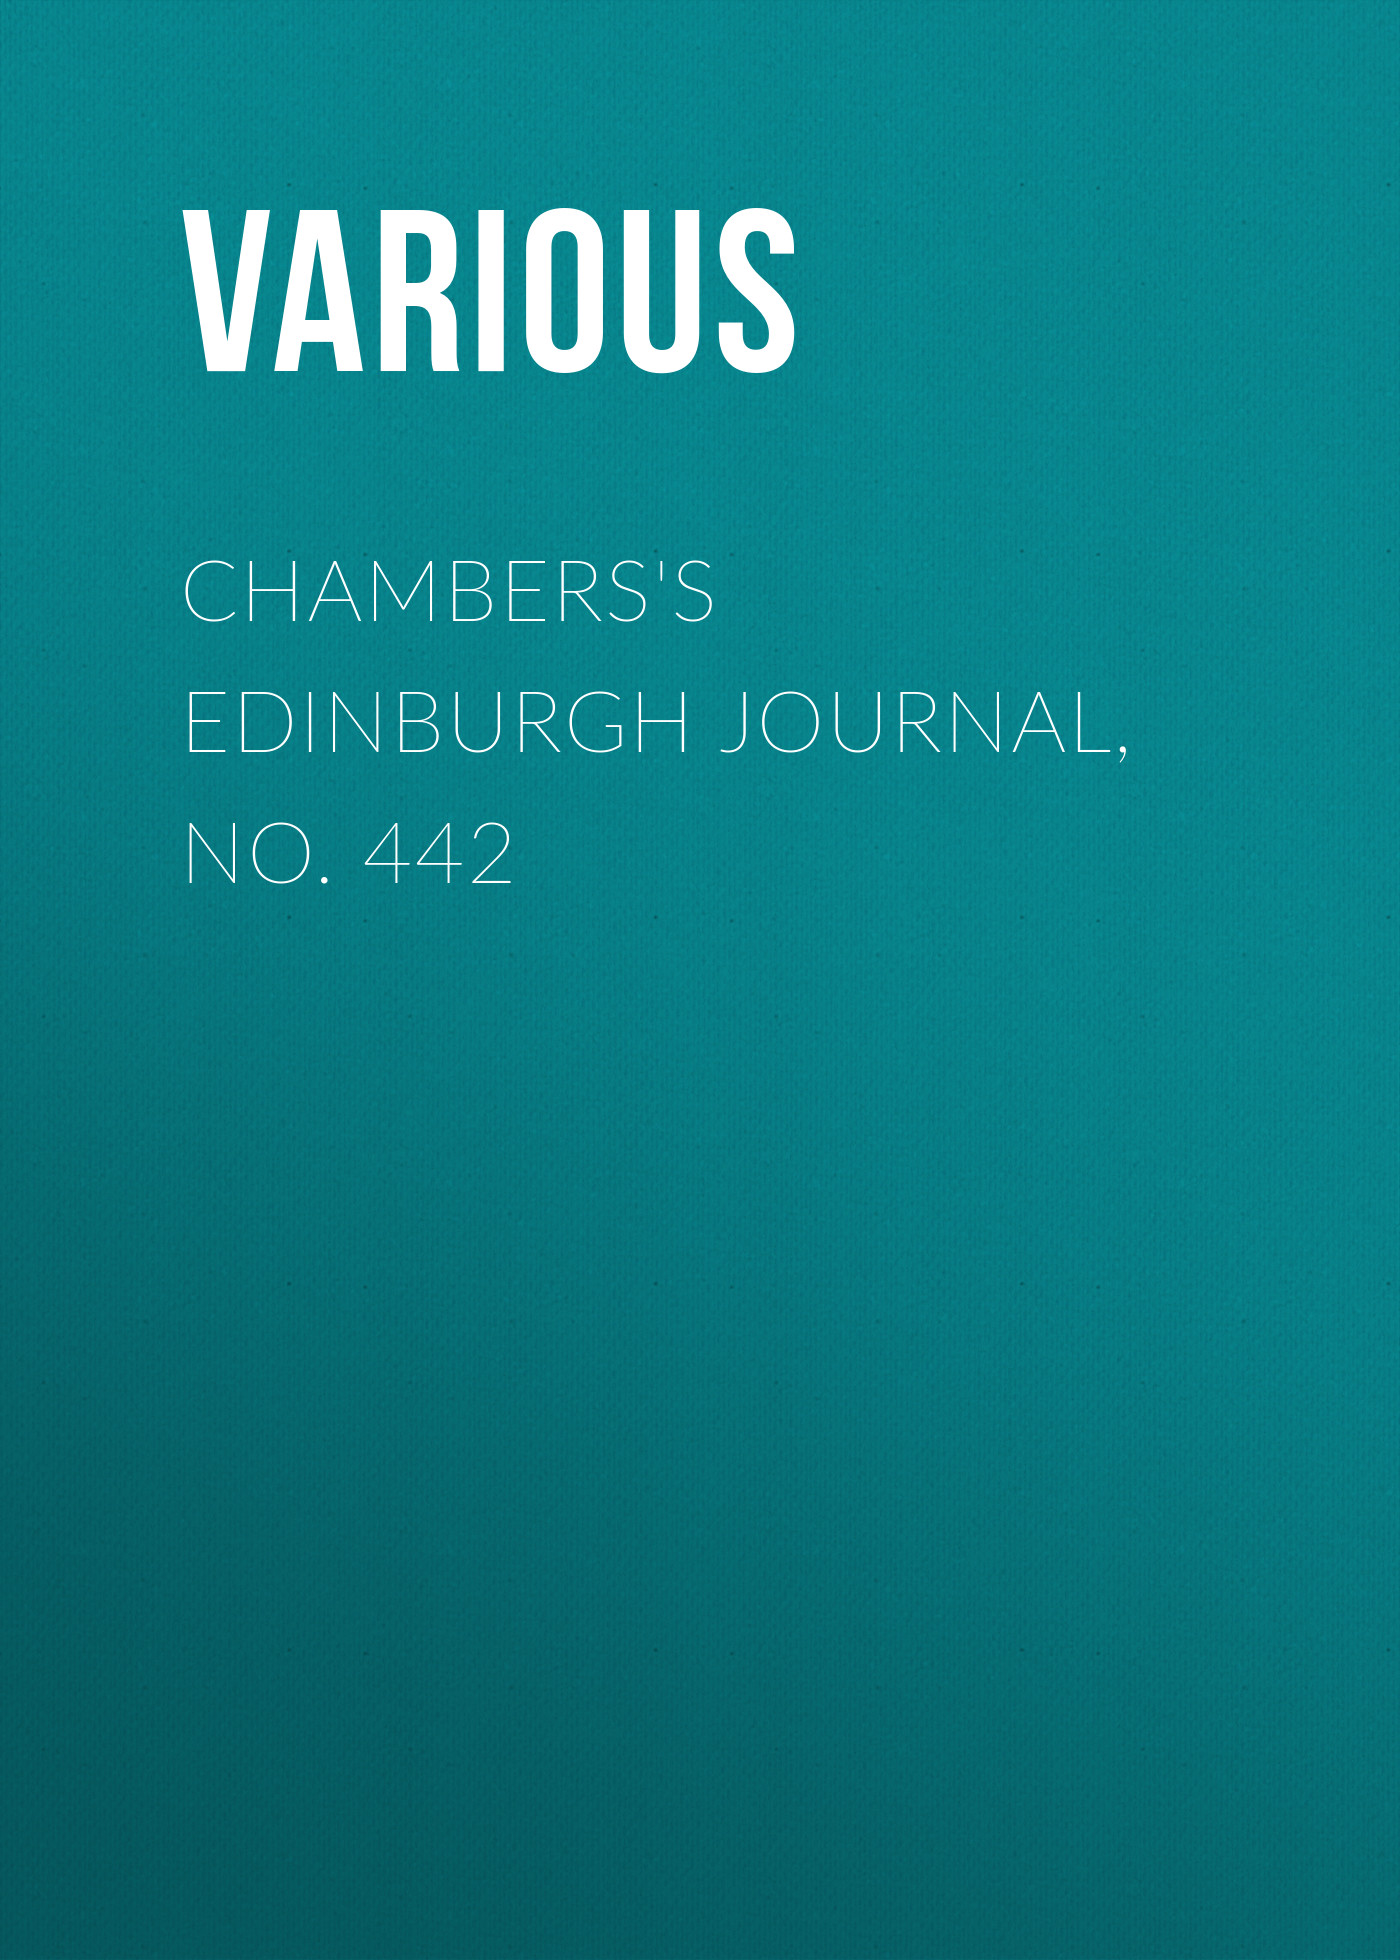 Various Chamberss Edinburgh Journal, No. 442